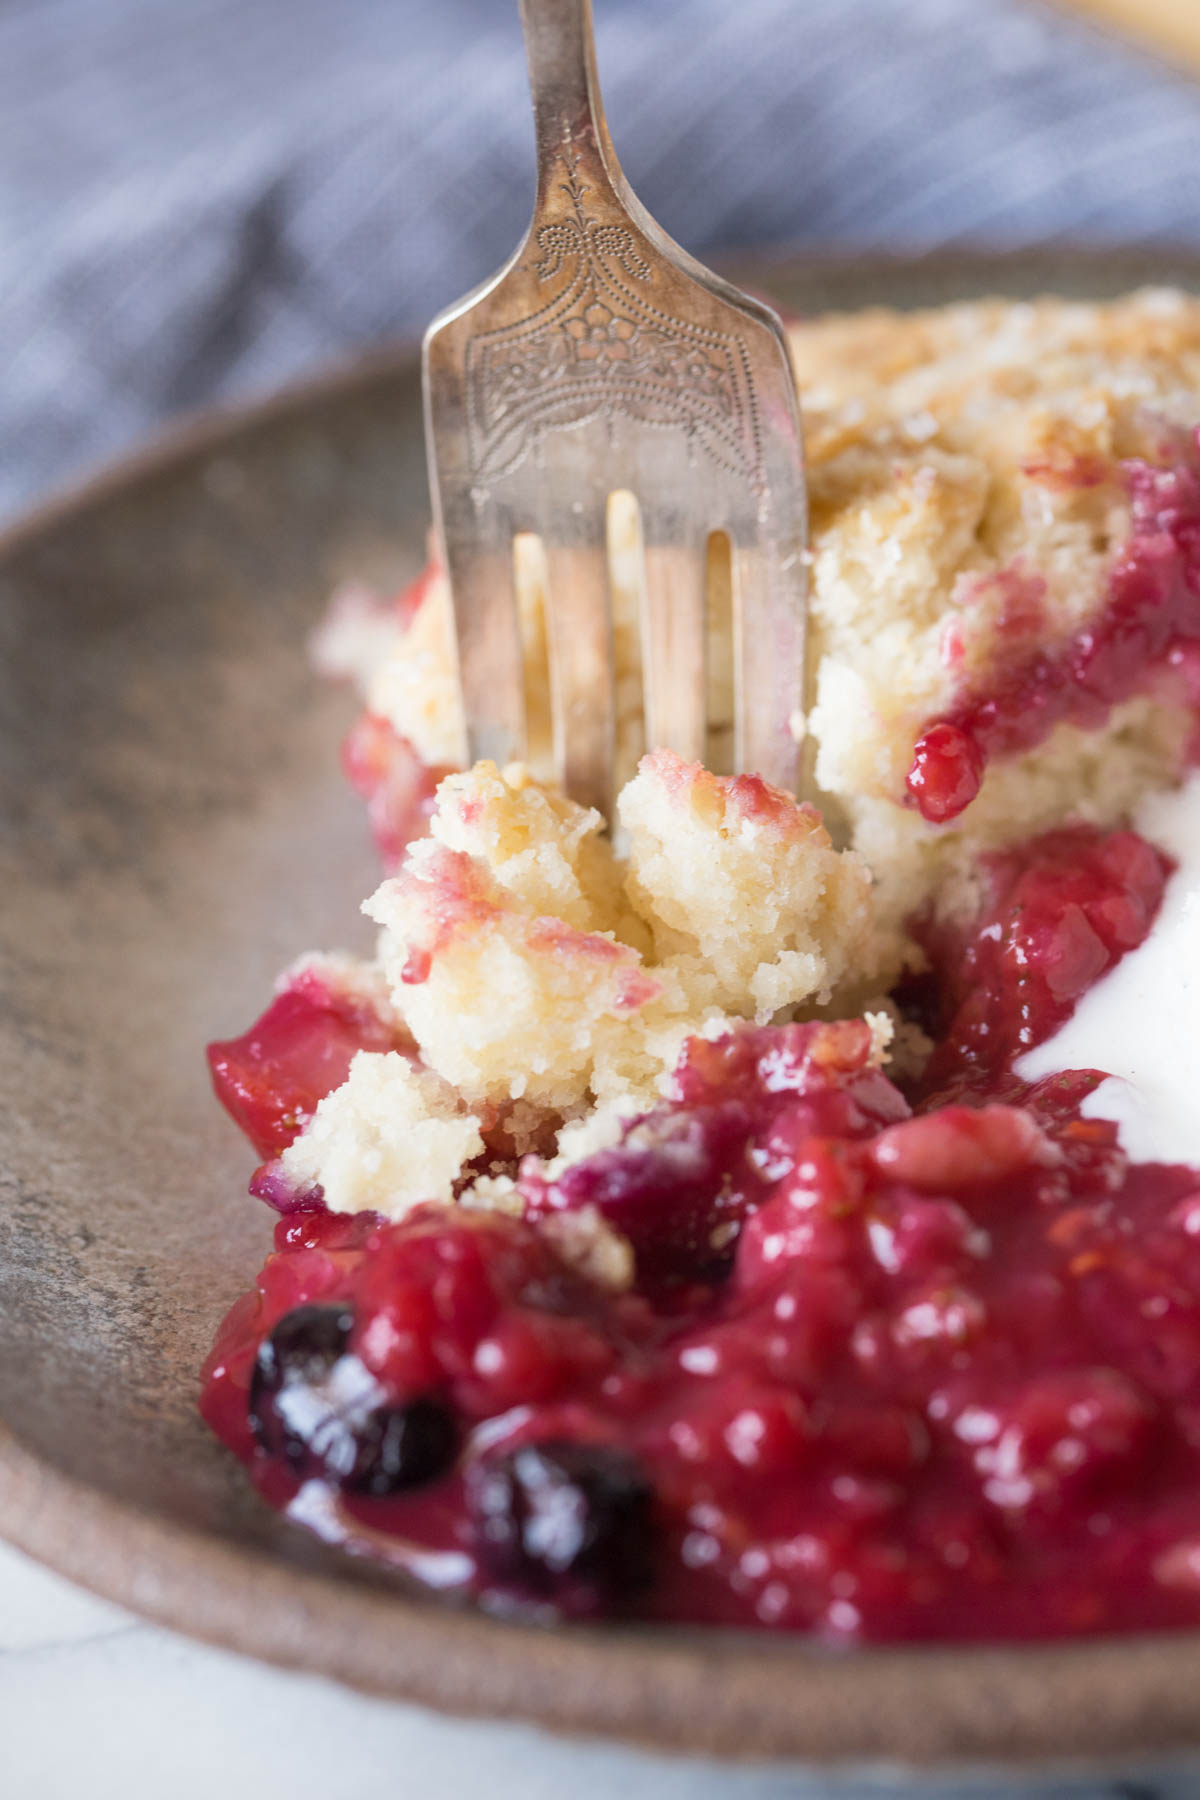 Close up shot of a fork in the Triple Berry Cobbler on a plate.